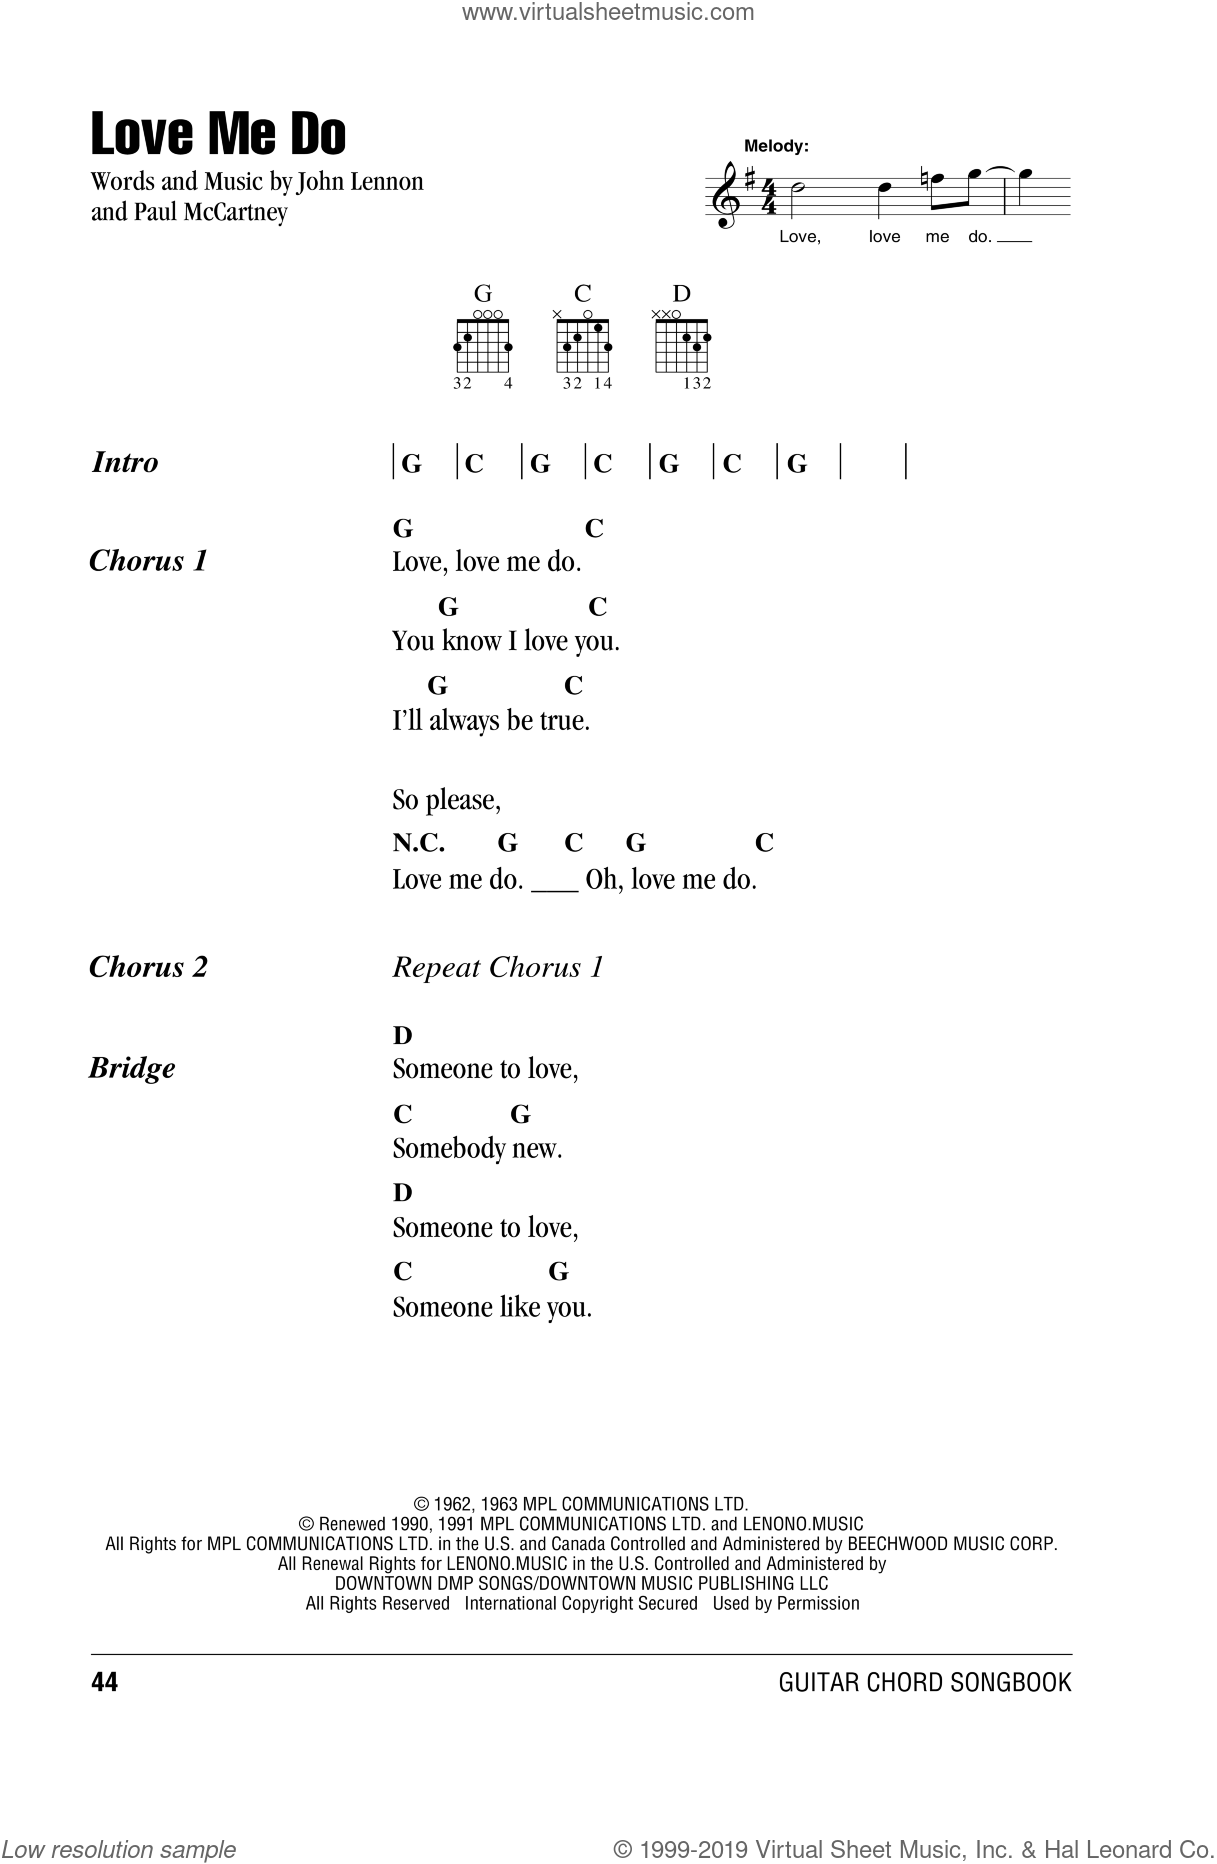 Love Me Do sheet music for guitar (chords, lyrics, melody) by Paul McCartney